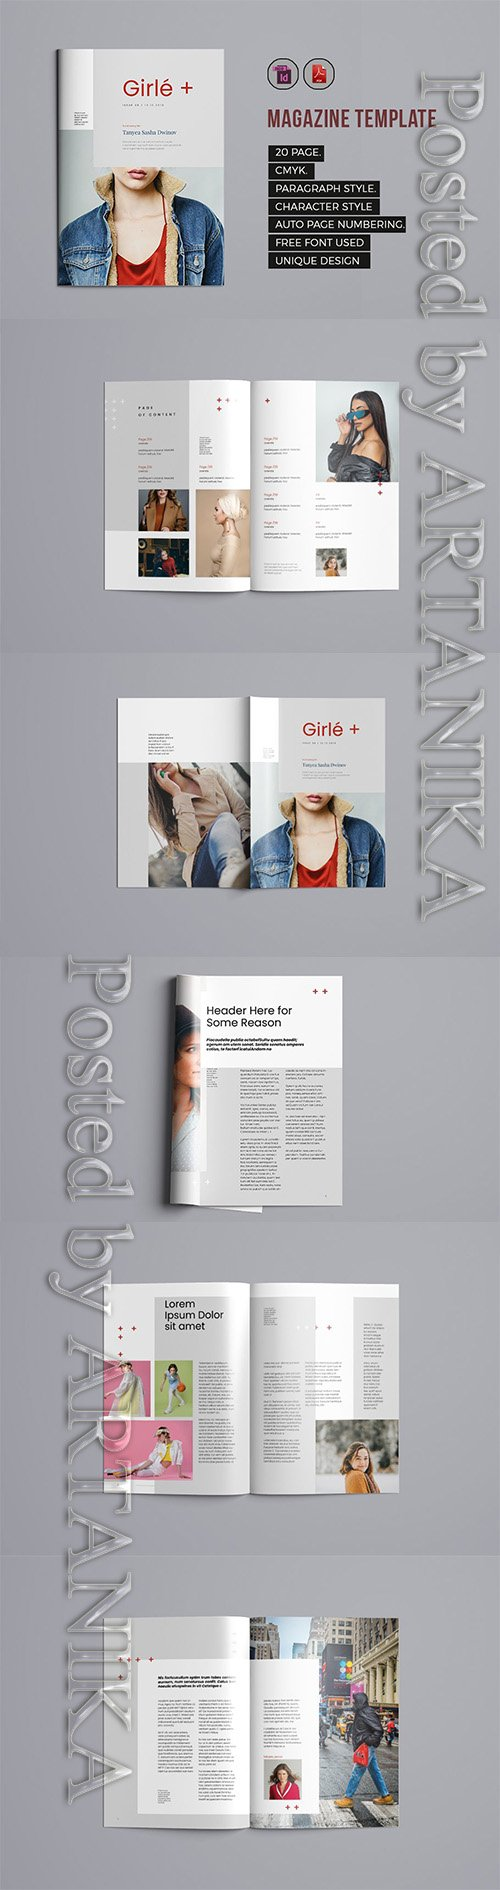 Indesign Magazine Template 7 3611306